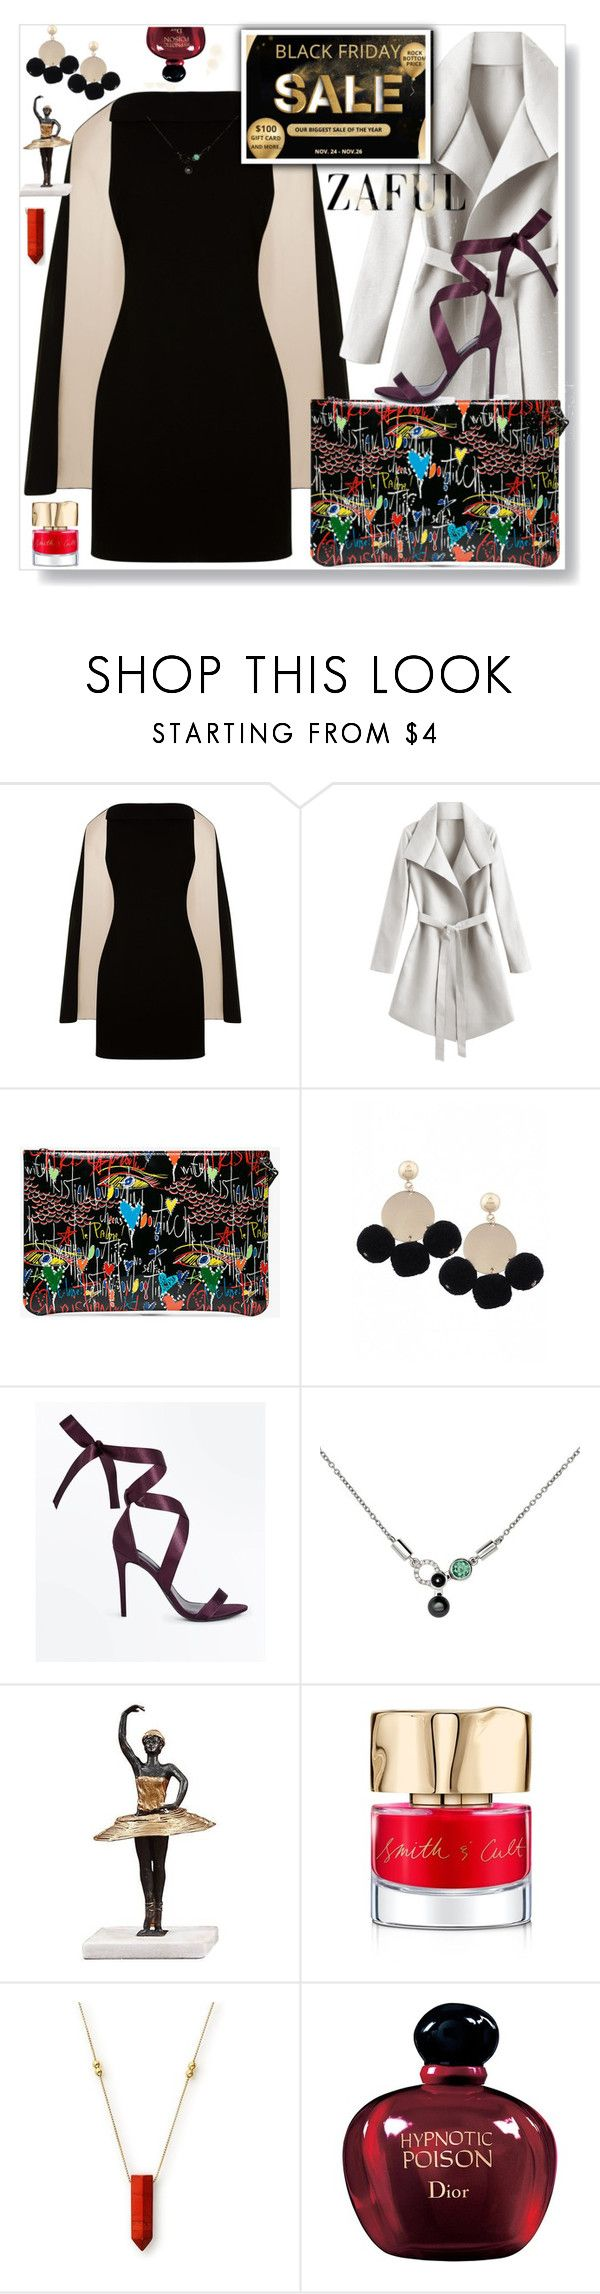 """""""Zaful Black Friday"""" by eldinreham ❤ liked on Polyvore featuring Alice + Olivia, Christian Louboutin, New Look, Nathalie Jean, Smith & Cult, Alex and Ani and Christian Dior"""